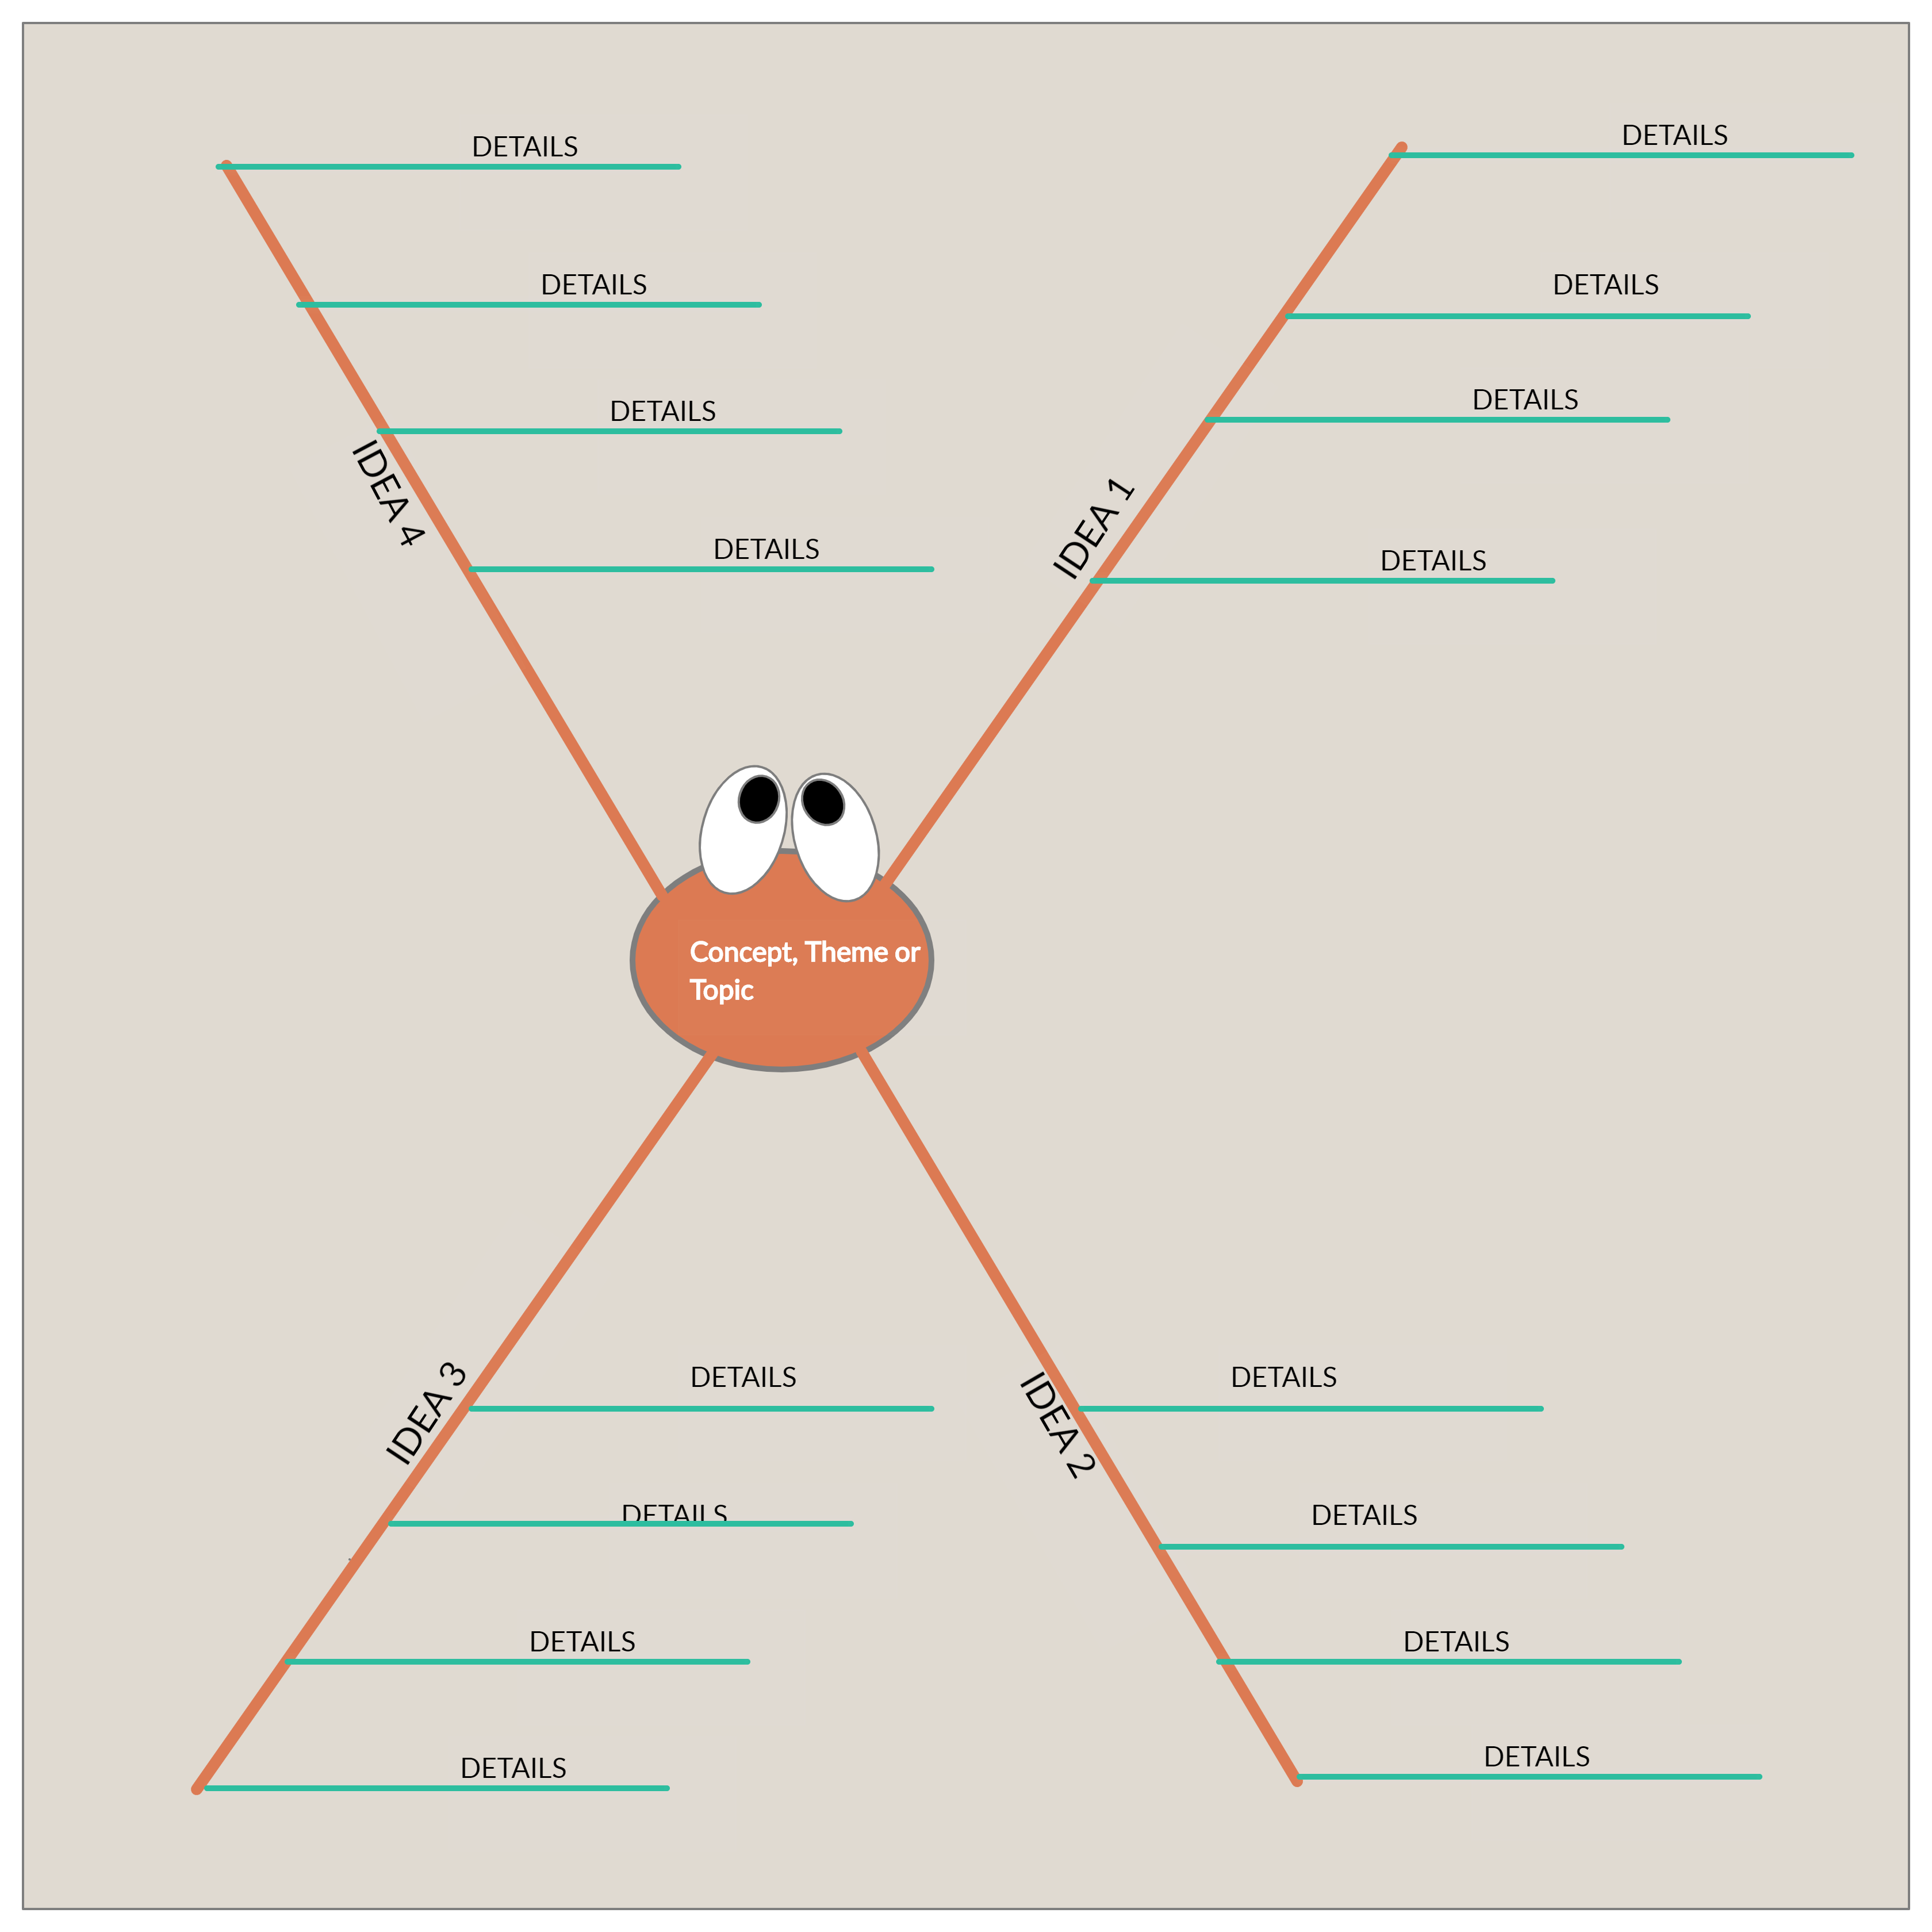 spider diagram template spider diagram template to quickly create topic overviews edit  spider diagram template to quickly